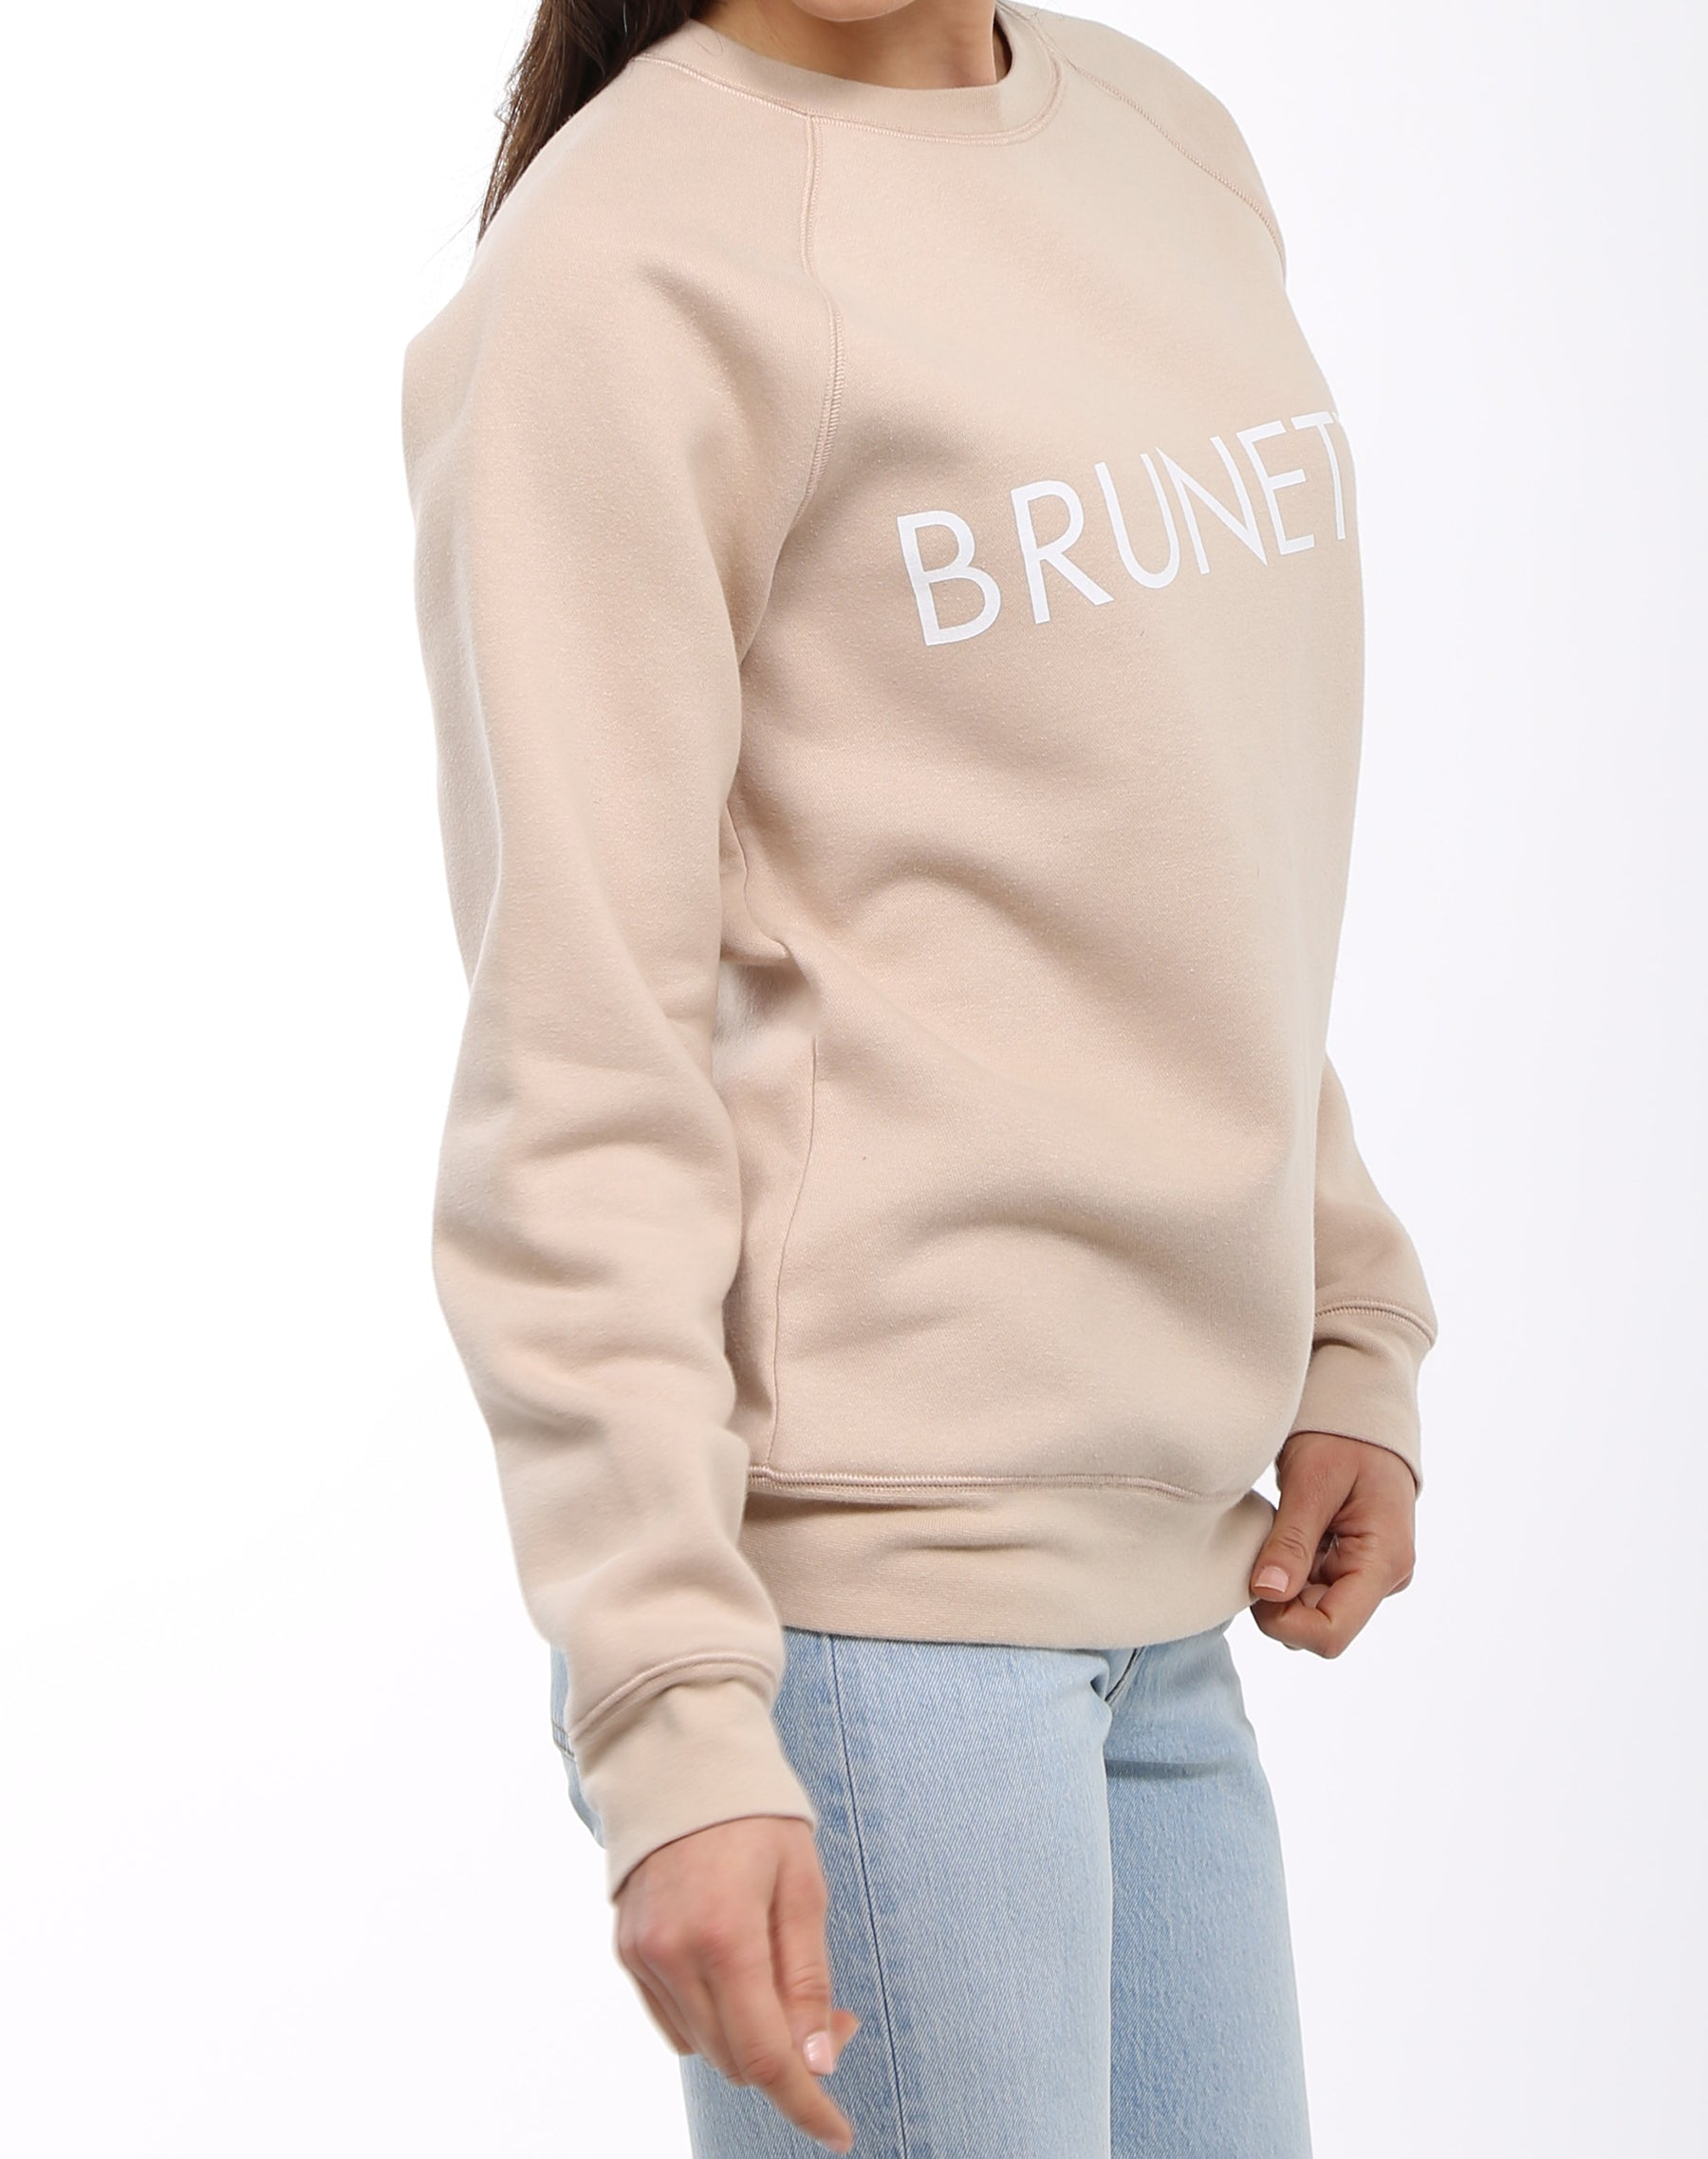 Side photo of the Brunette classic crew neck sweatshirt in toasted almond by Brunette the Label.